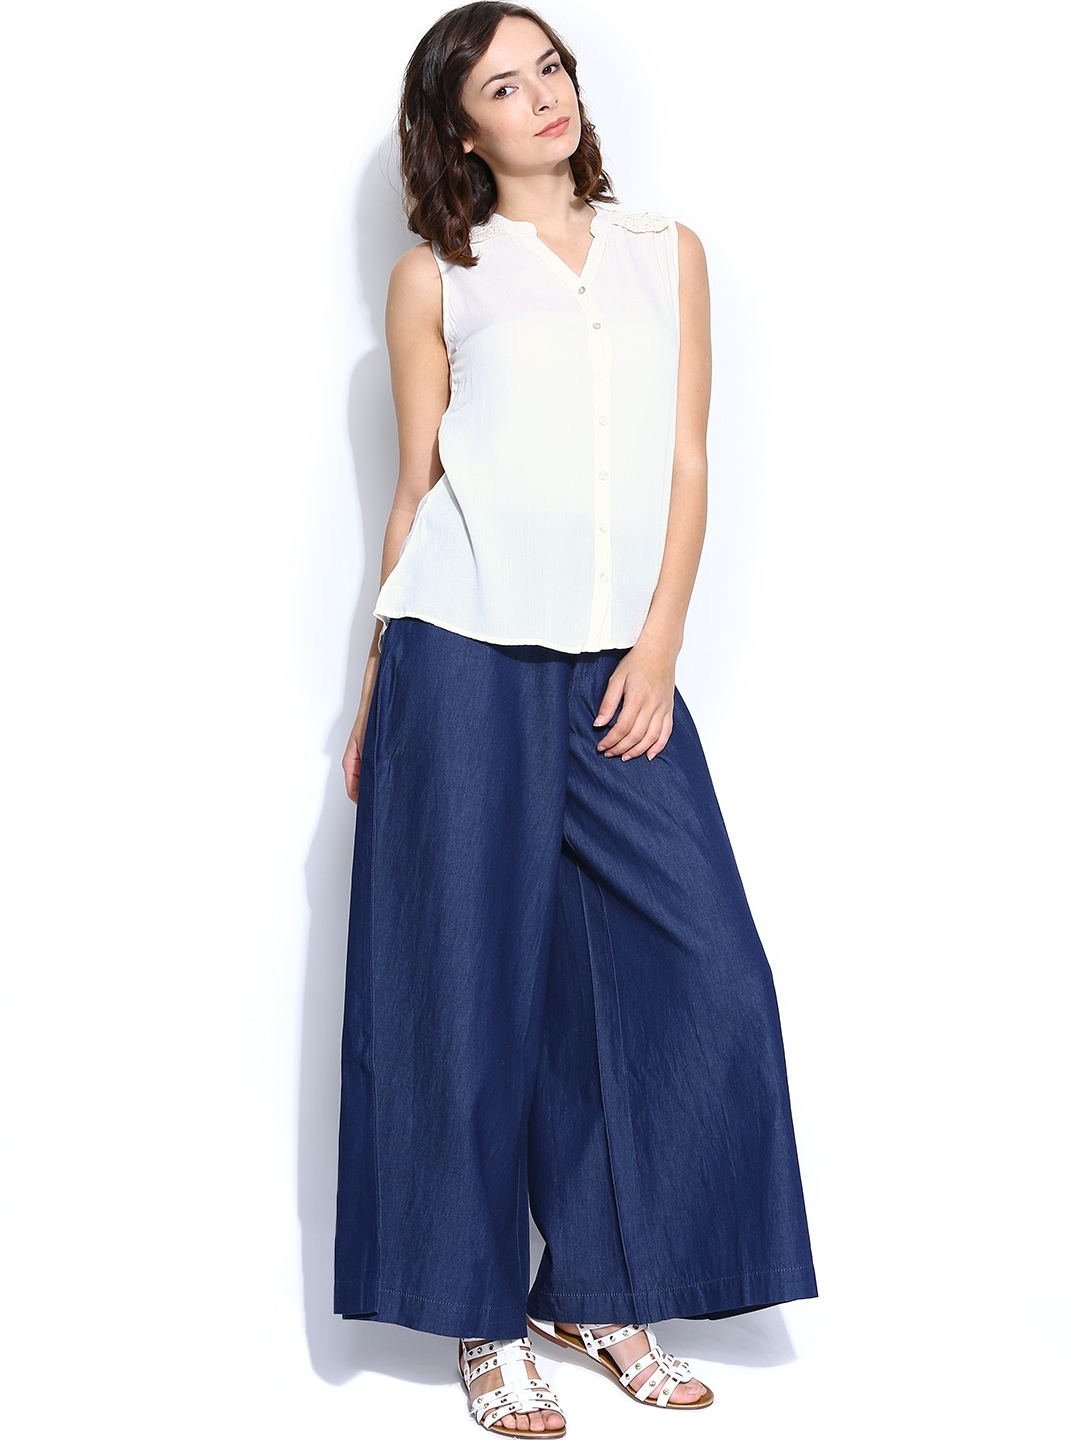 Myntra mineral women off white shirt 660087 buy myntra for Shirts online shopping lowest price